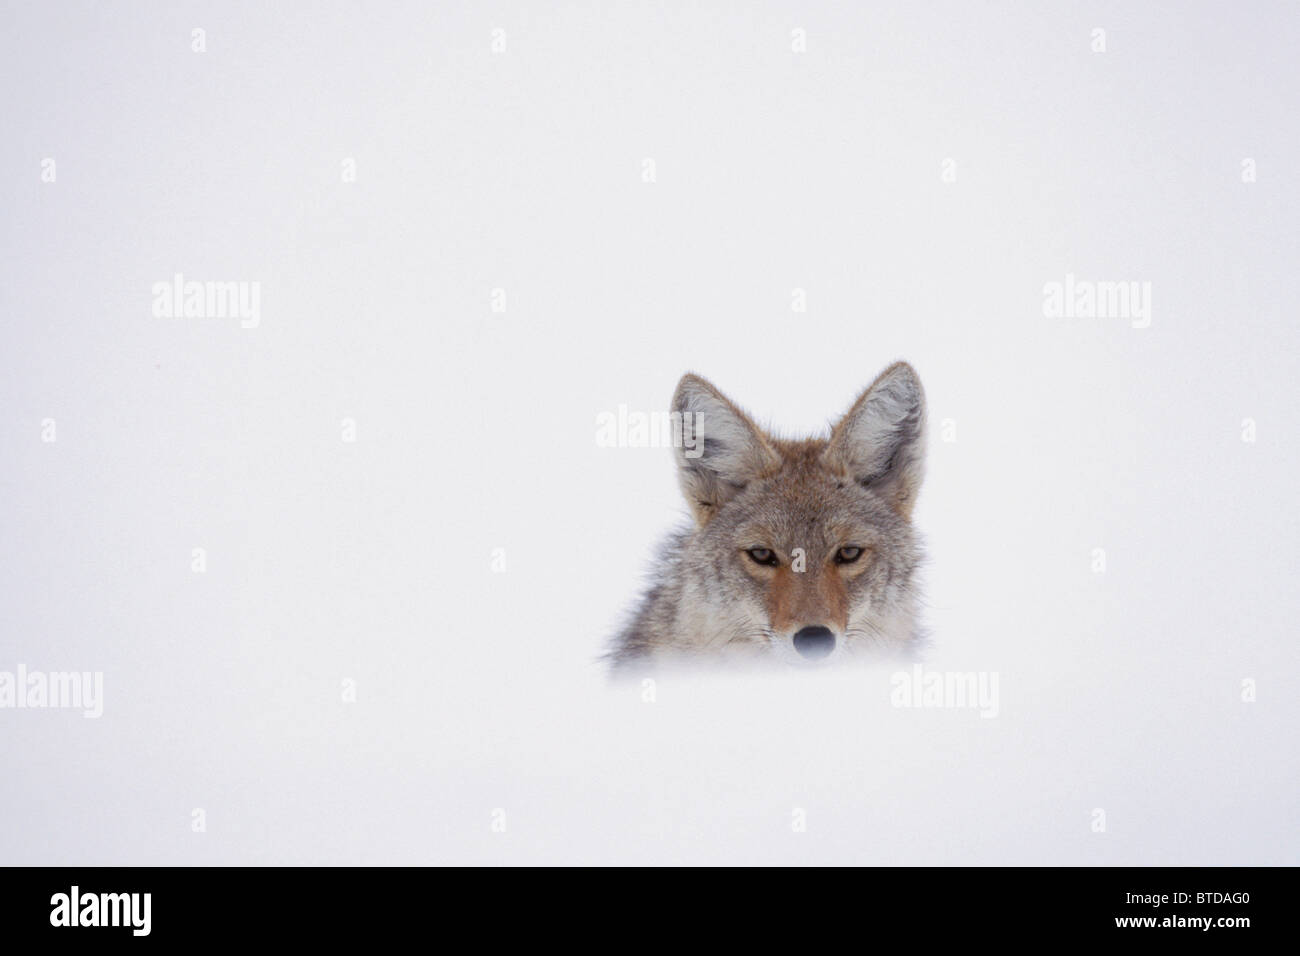 Coyote sur plus d'un transport de la neige, Parc National de Yellowstone, aux États-Unis, l'hiver Photo Stock